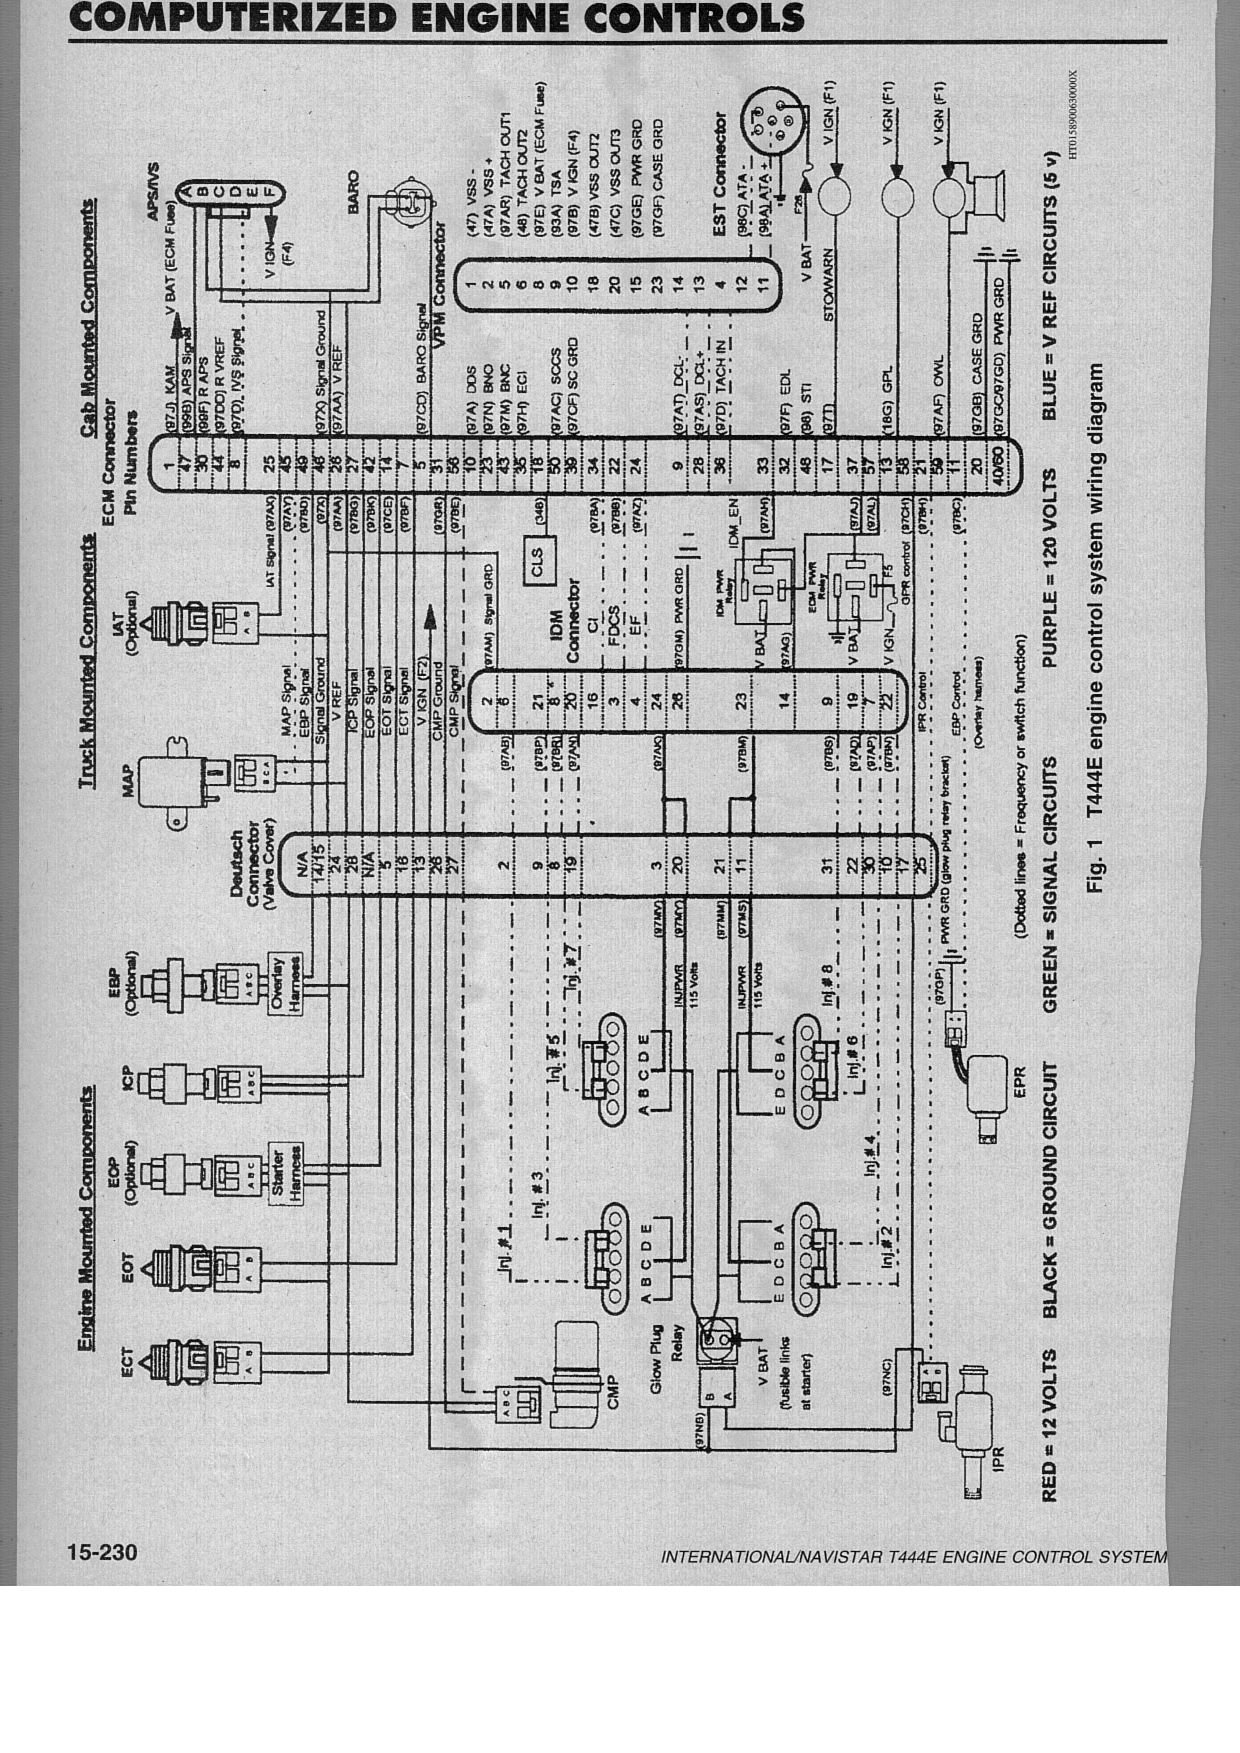 2009 07 30_180653_T444epg2 how do i get hold of a wiring diagram for a 1996 international 97 international 4700 wiring diagrams at n-0.co